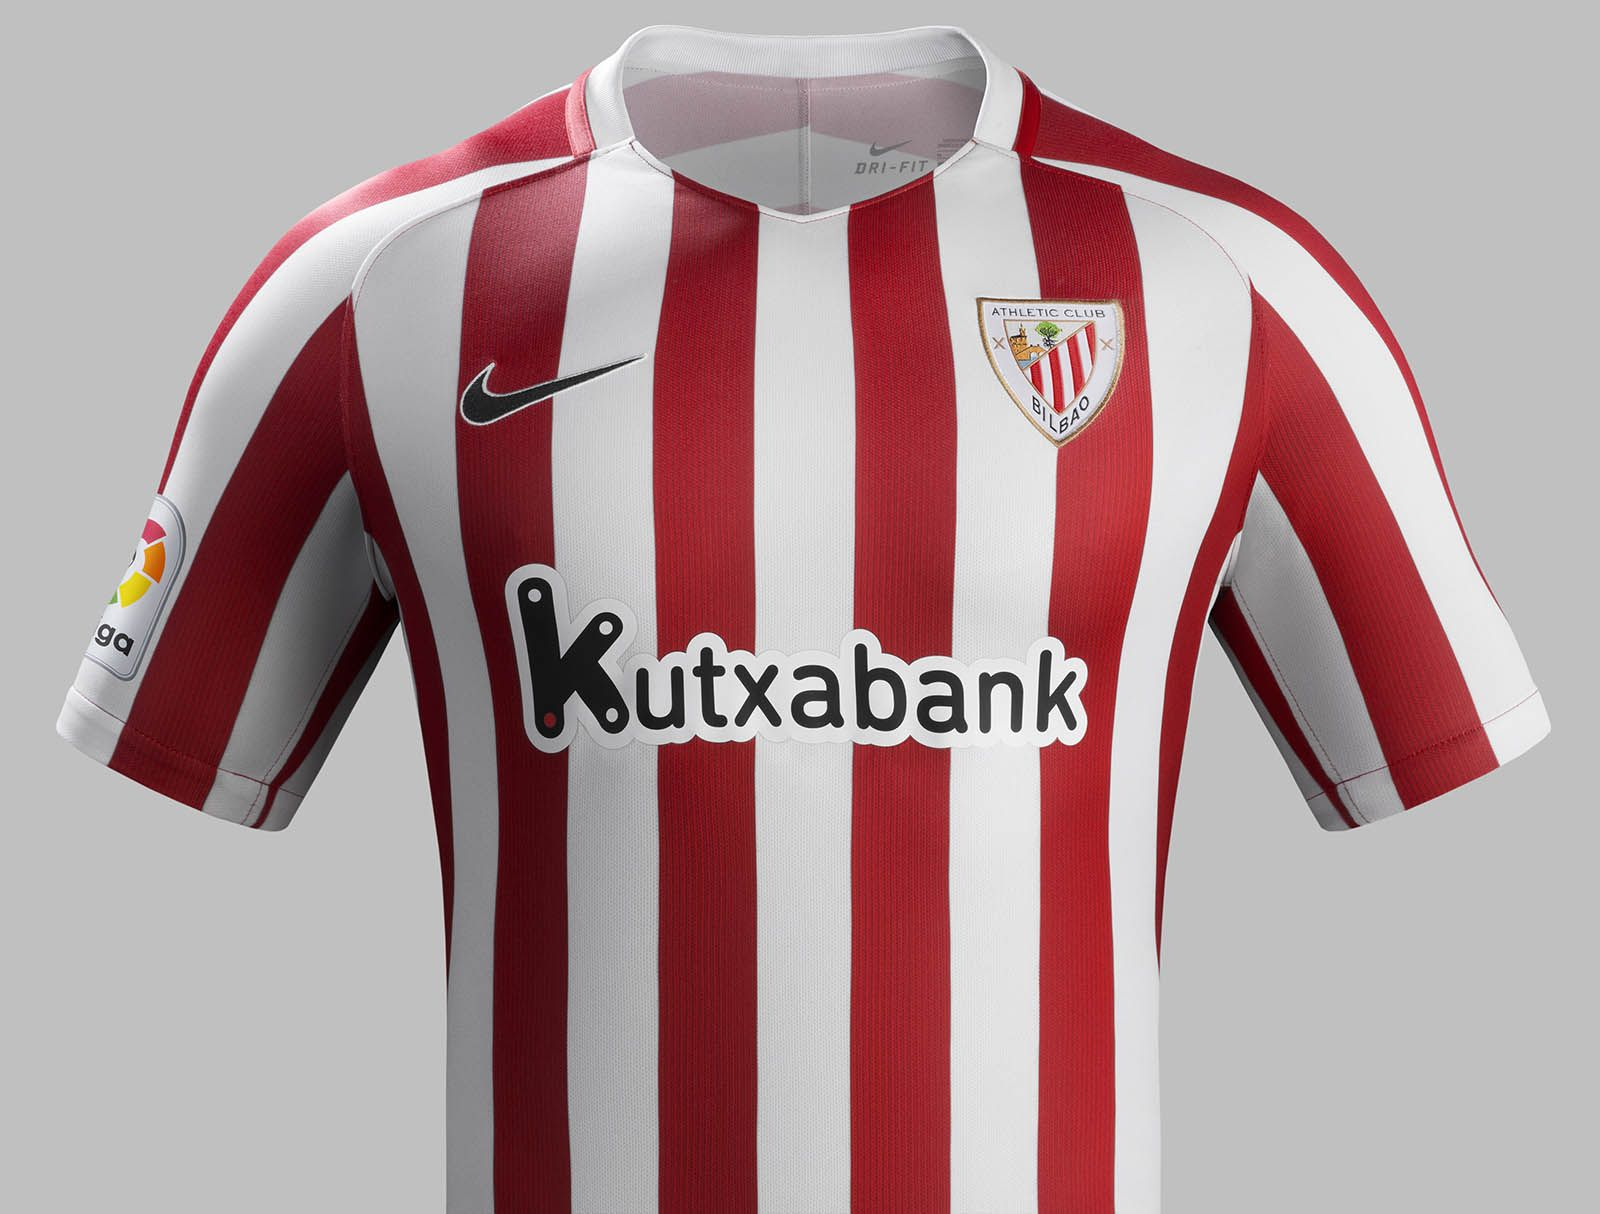 Despedida Lago taupo Interrupción  Athletic Bilbao 16-17 Home Kit Released | Athletic clubs, Home and away,  Team wear